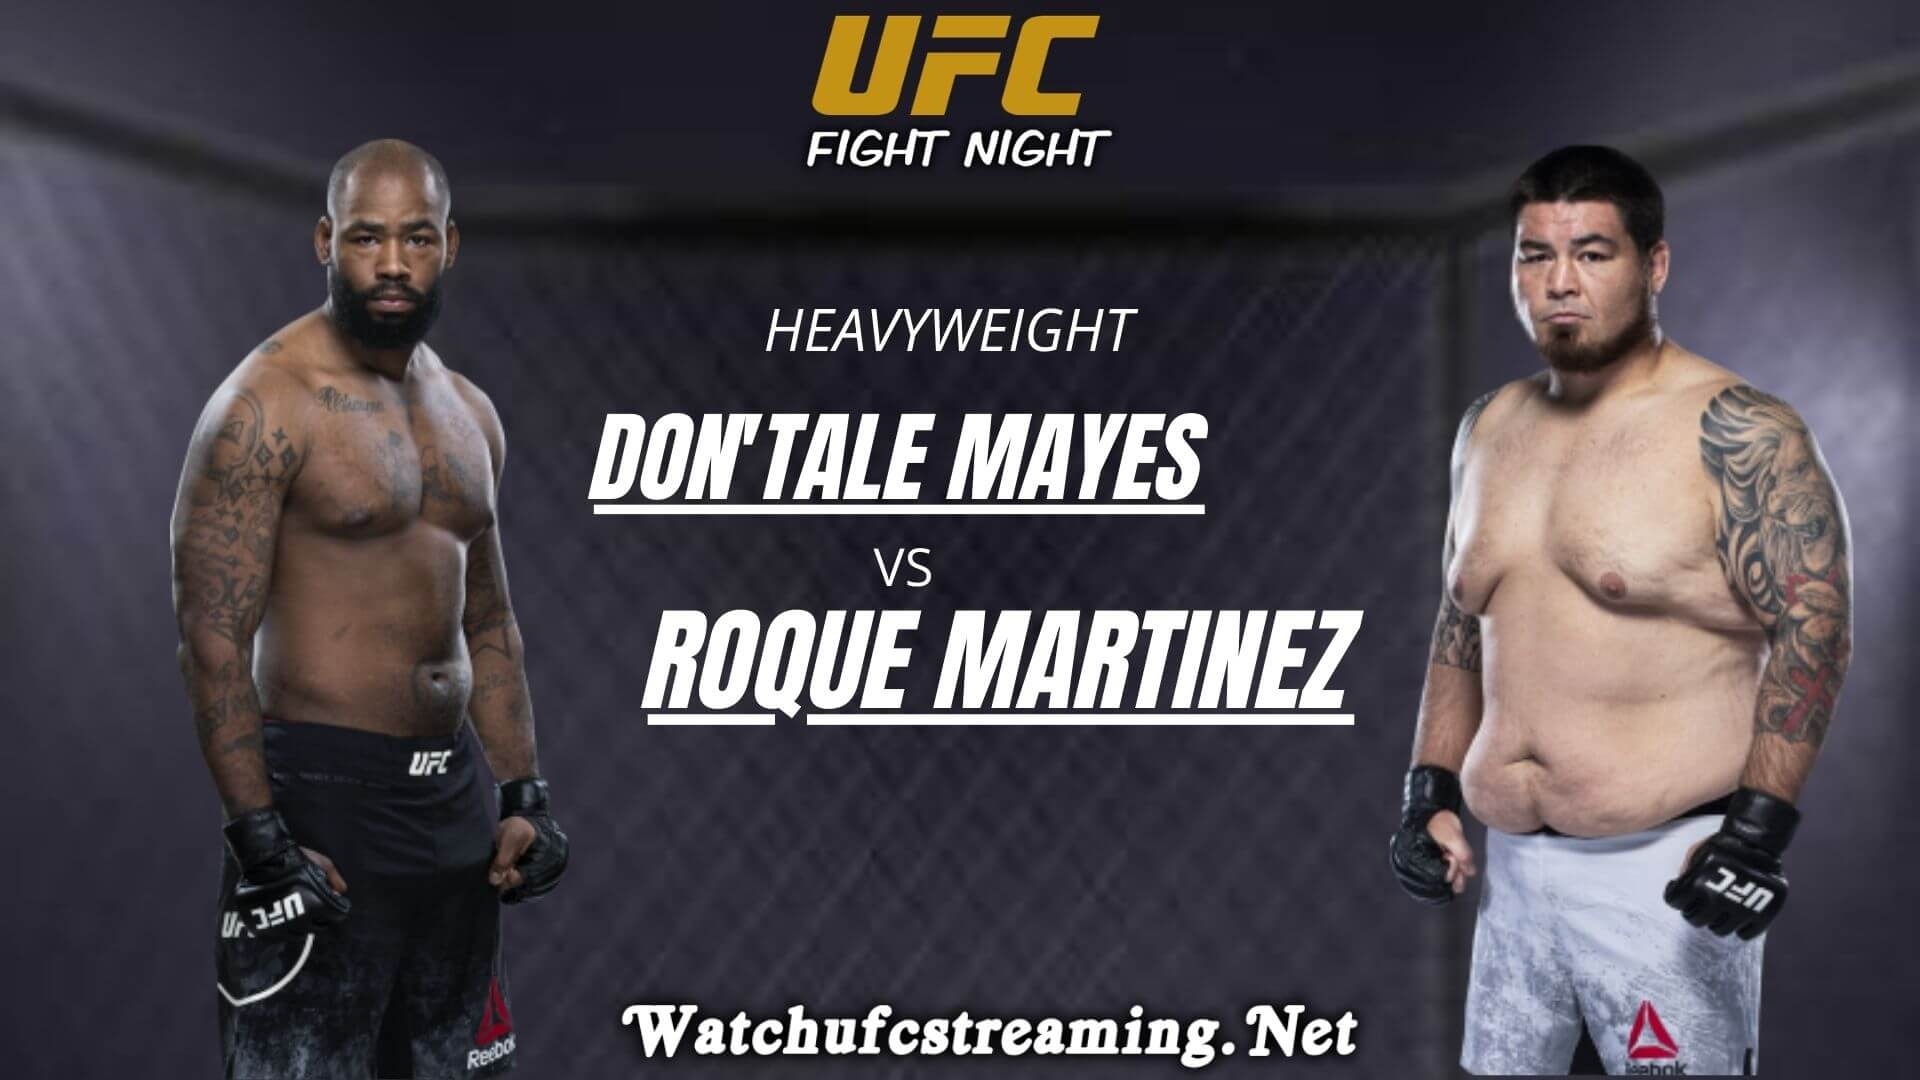 DonTale Mayes Vs Roque Martinez Highlights 2020 | UFC Fight Night